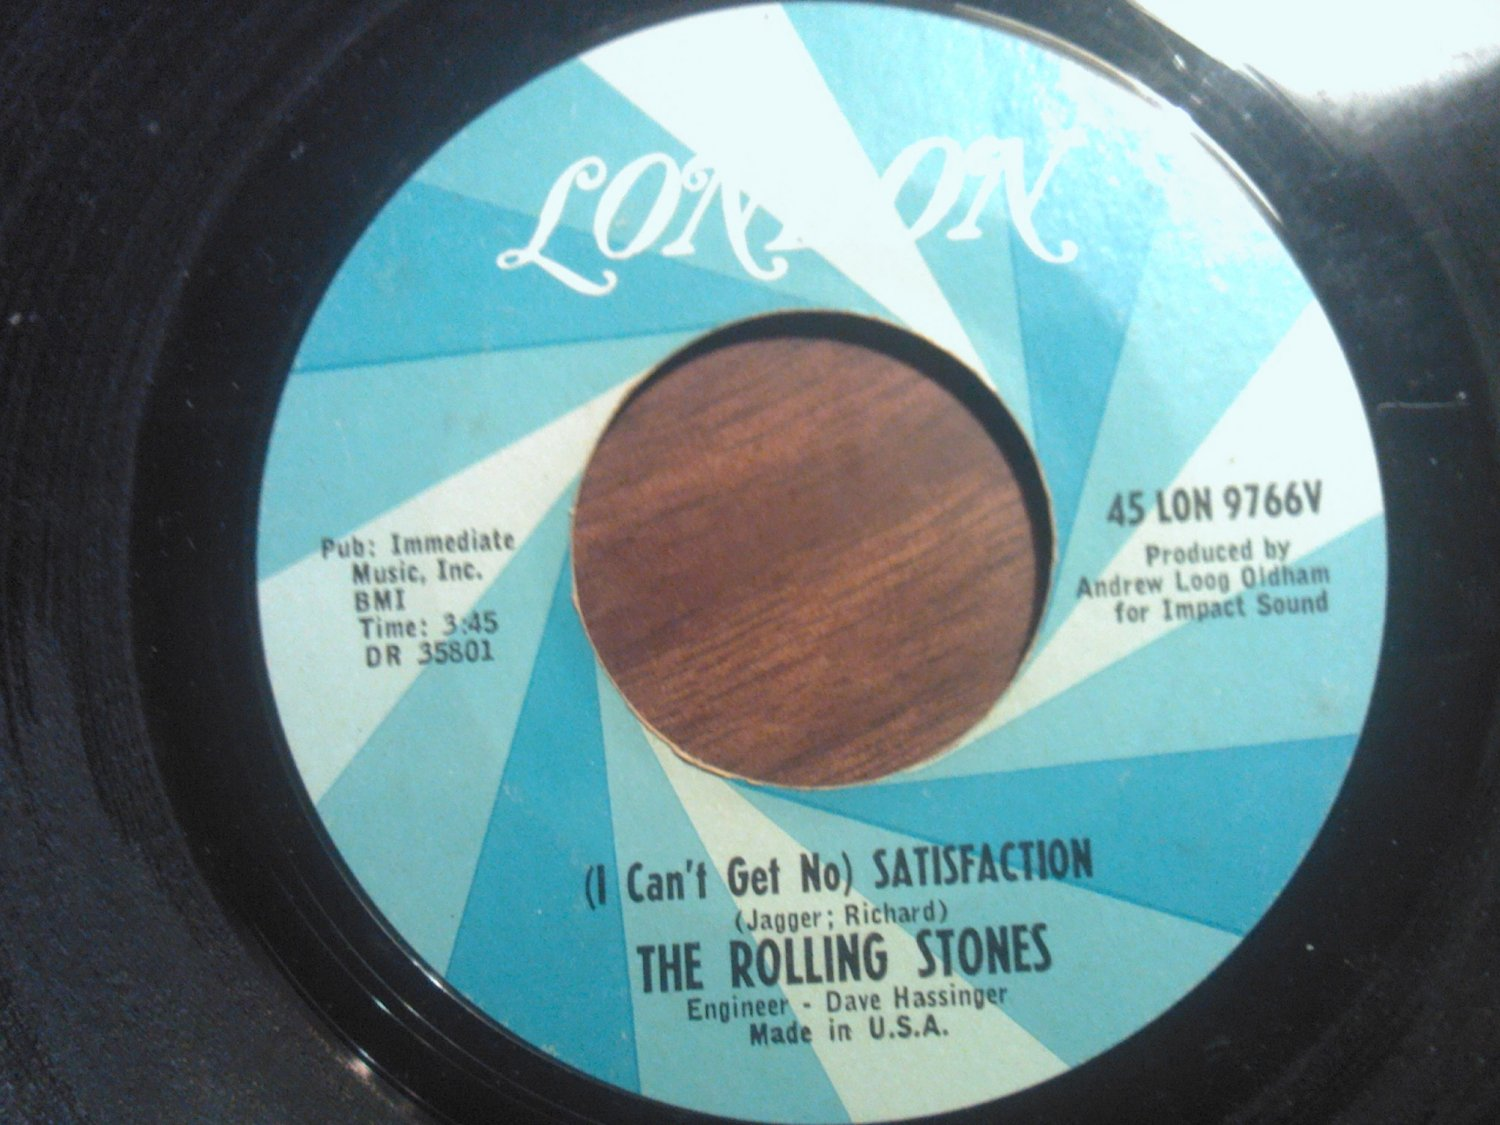 45 THE ROLLING STONES Satisfaction b/w Under Assistant.. london vintage vinyl record